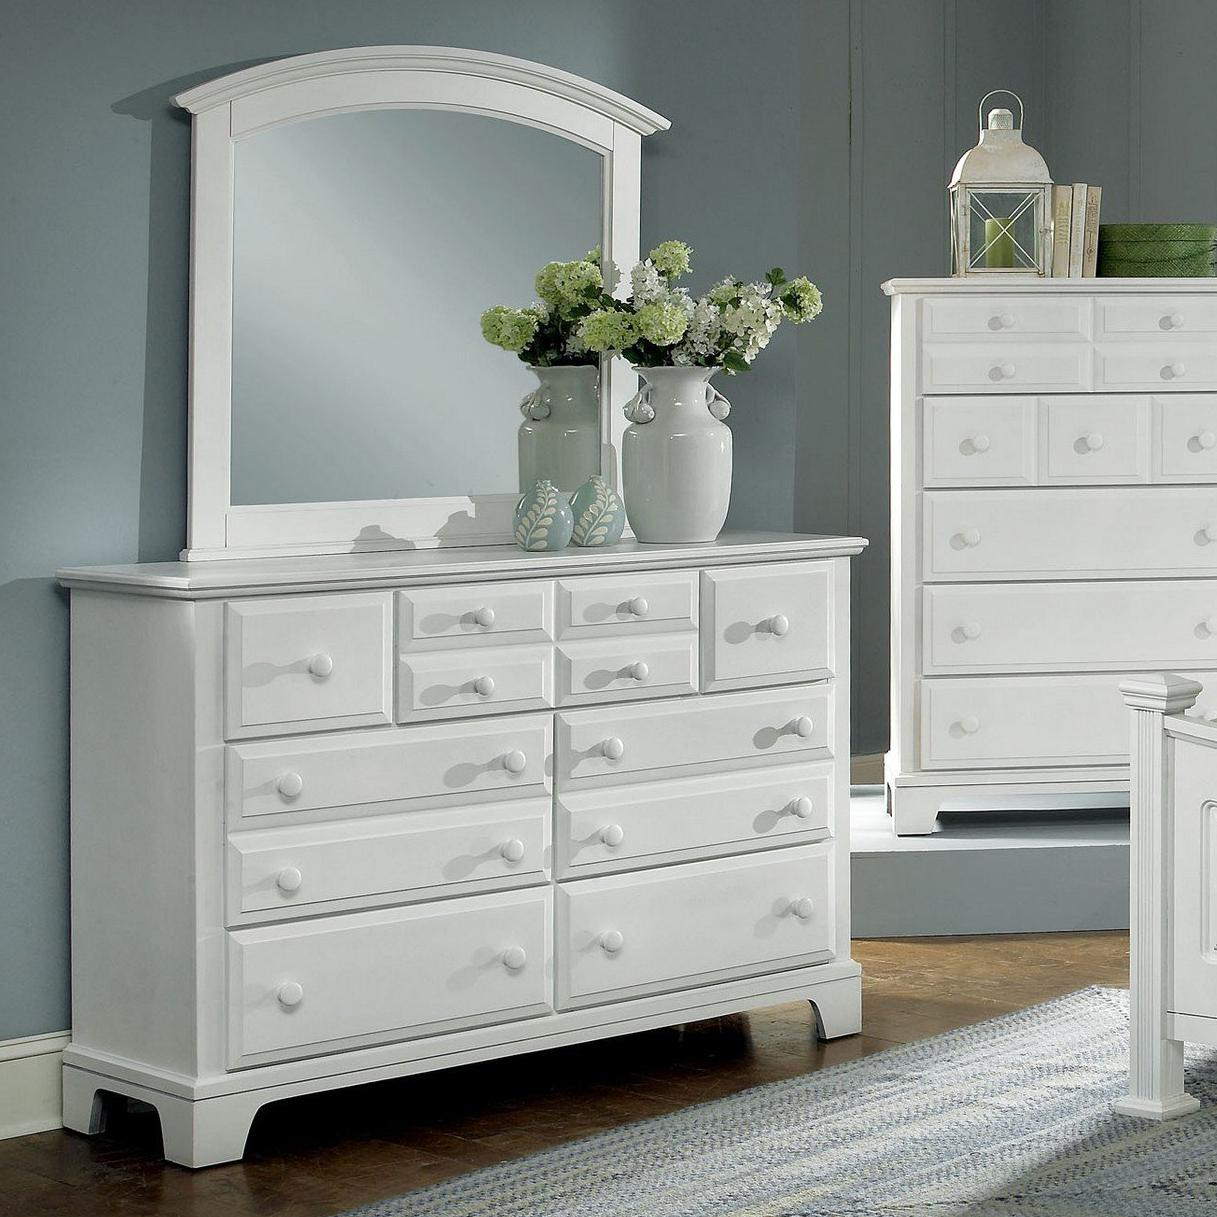 Hamilton/Franklin 7 Drawer Dresser with Landscape Mirror by Vaughan Bassett at Northeast Factory Direct